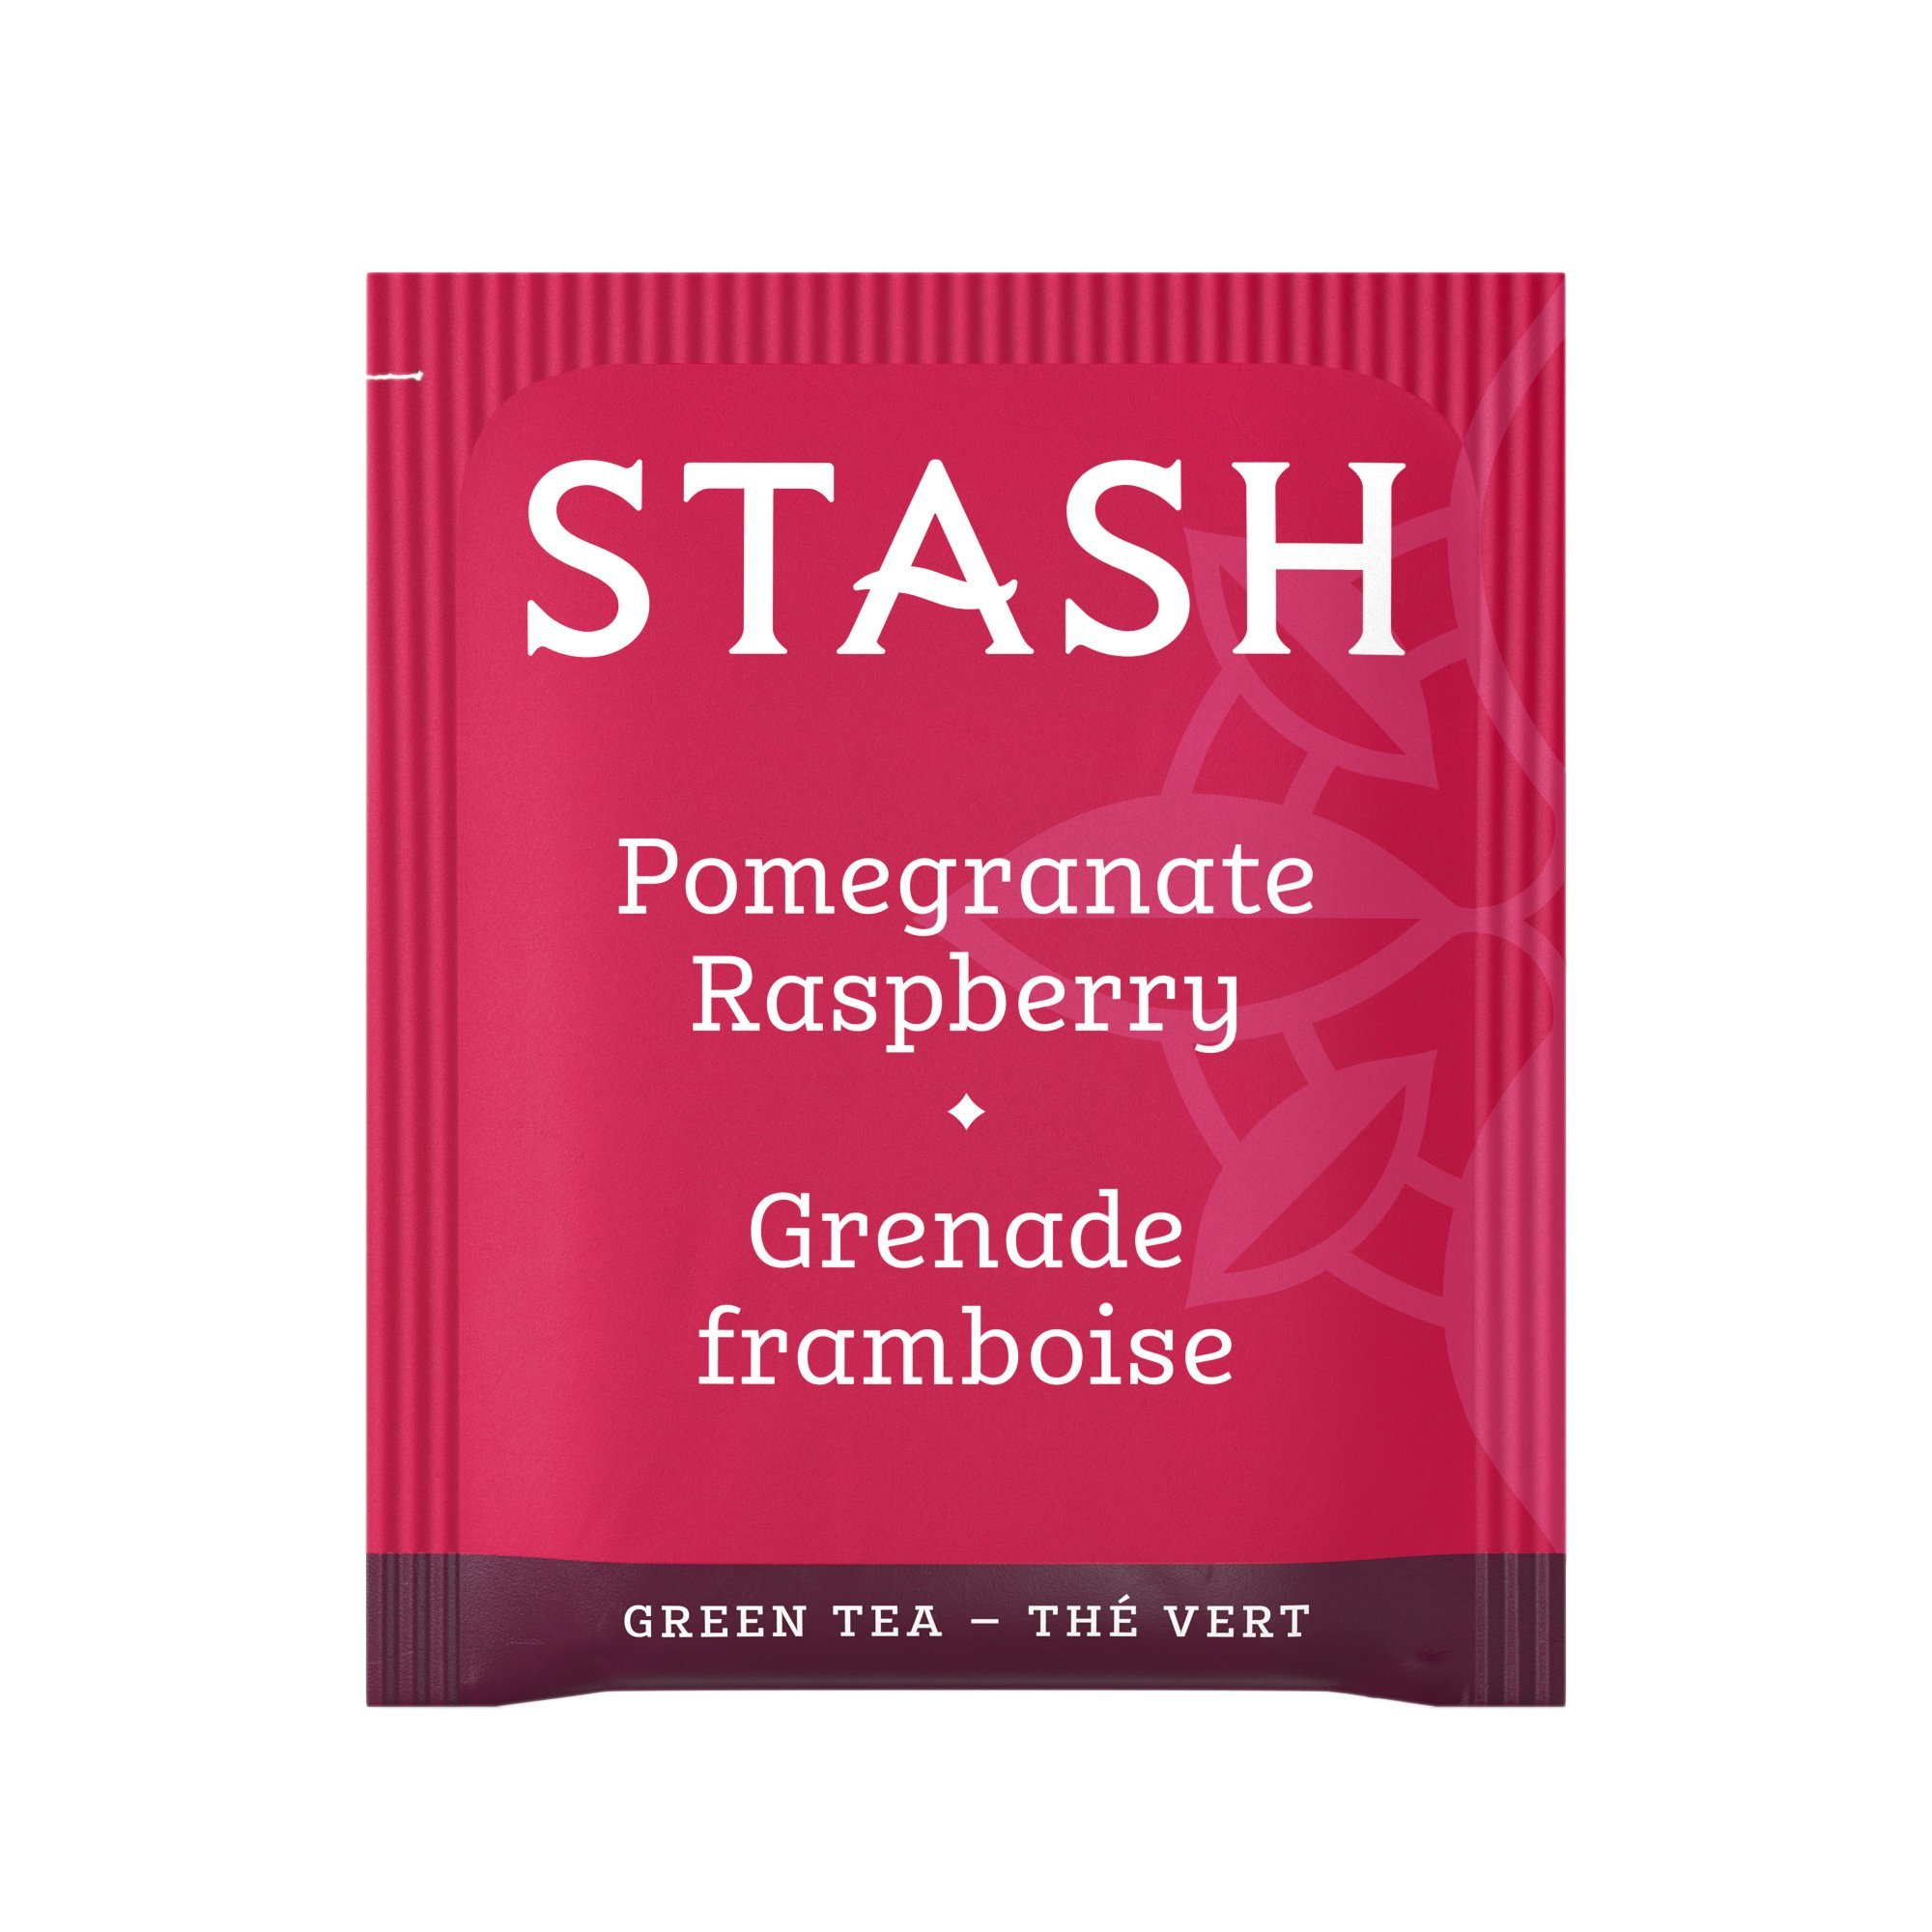 Stash Tea Pomegranate Raspberry Green Tea With Matcha 1000 Tea Bags in Foil Individual Green Tea Bags for Use in Teapots Mugs or Teacups, Brew Hot Tea or Iced Tea by Stash Tea (Image #3)